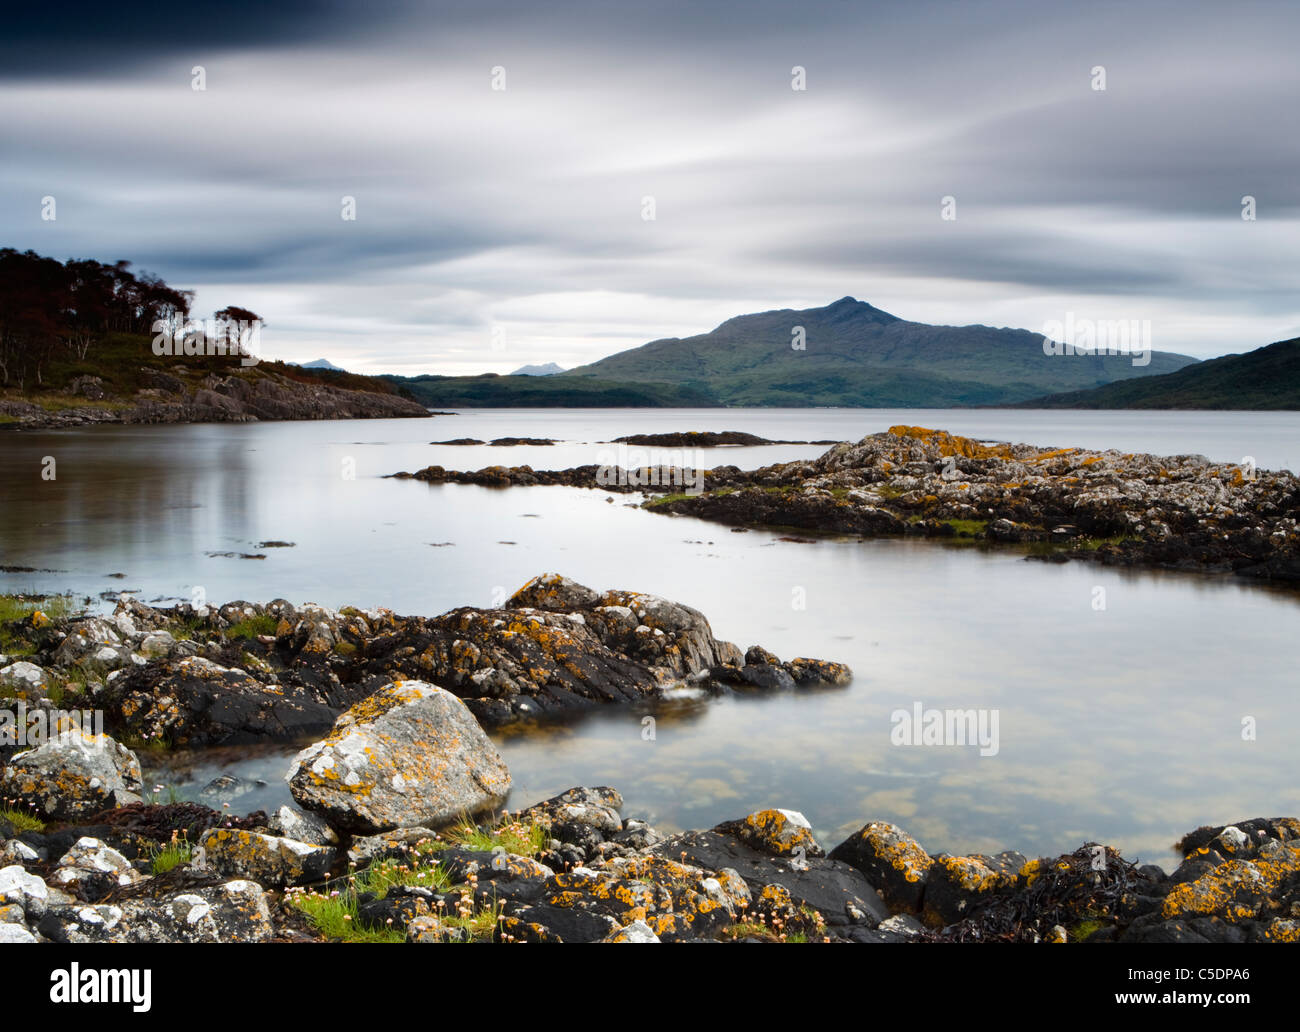 Loch Sunart near Salen, Highland, Scotland, UK Stock Photo